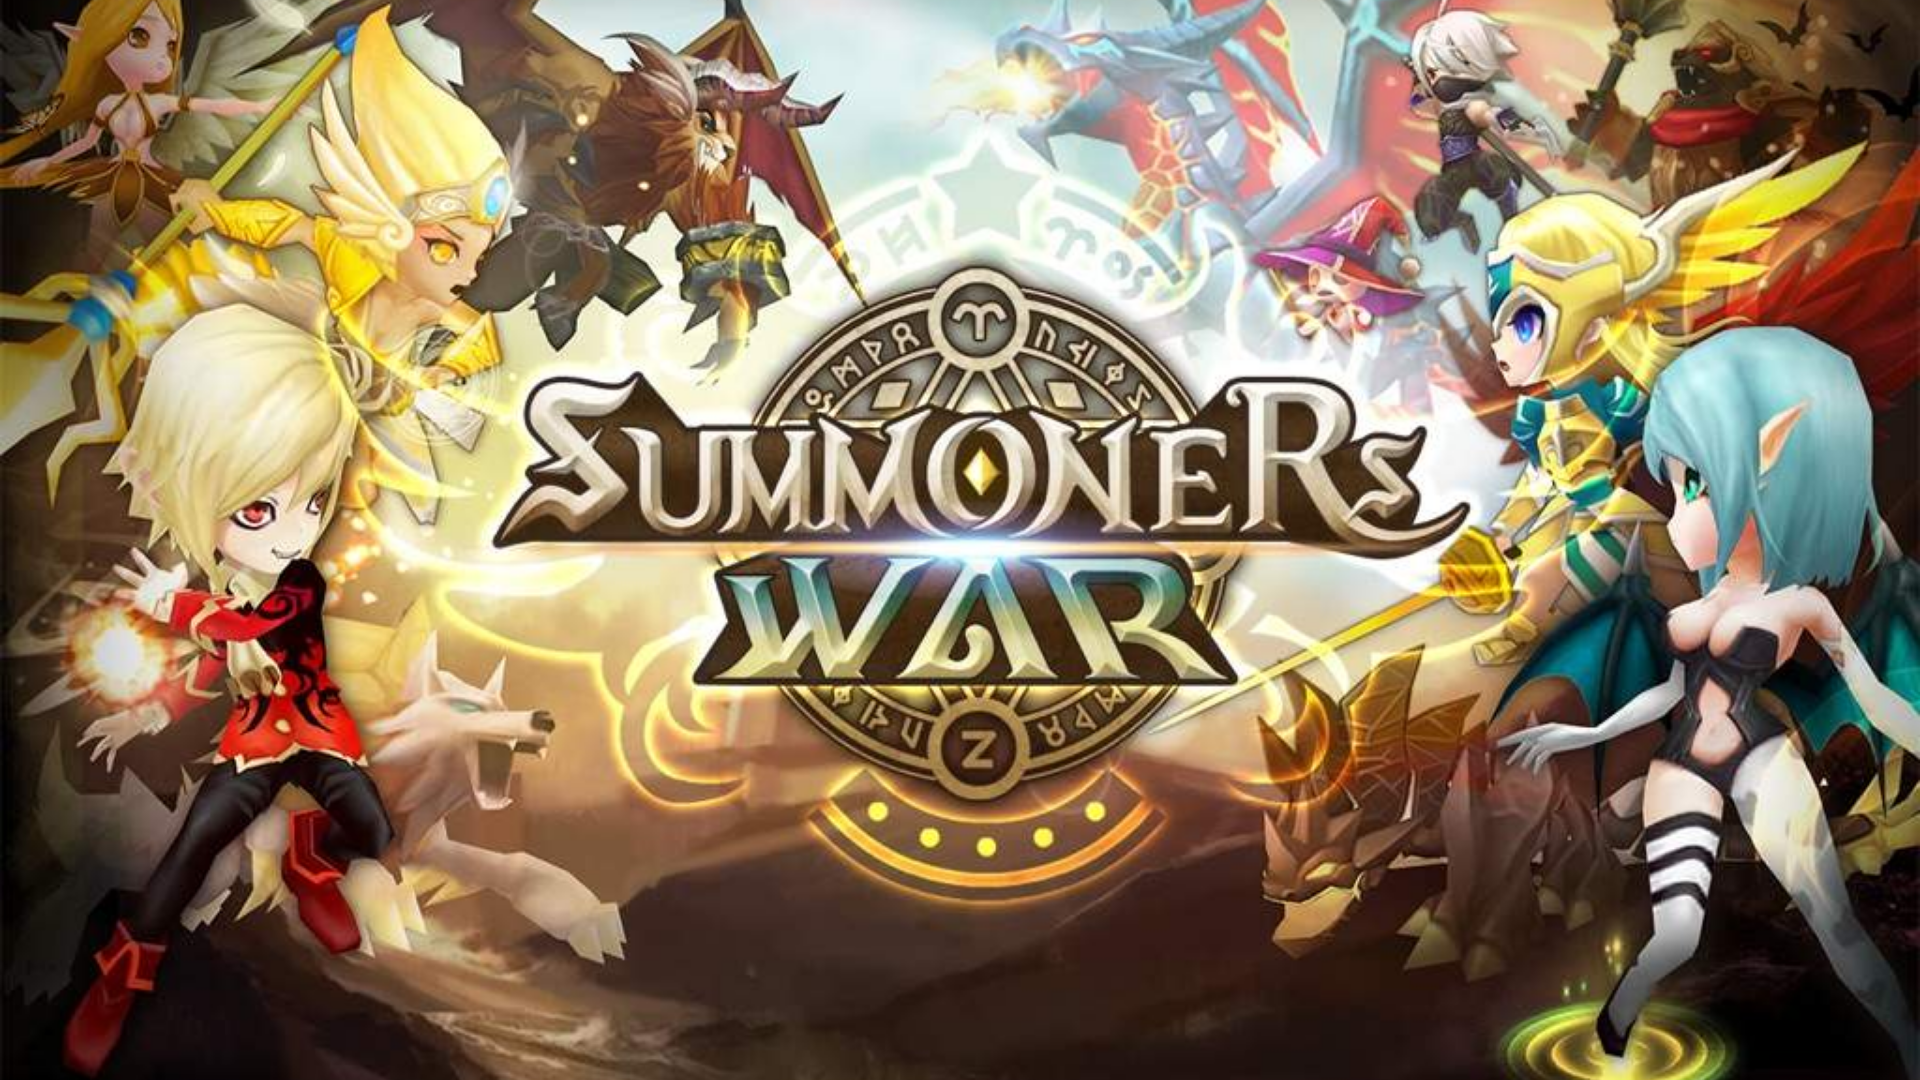 Summoners War: Sky Arena - Street Fighter V: Champion Edition Collaboration Announced